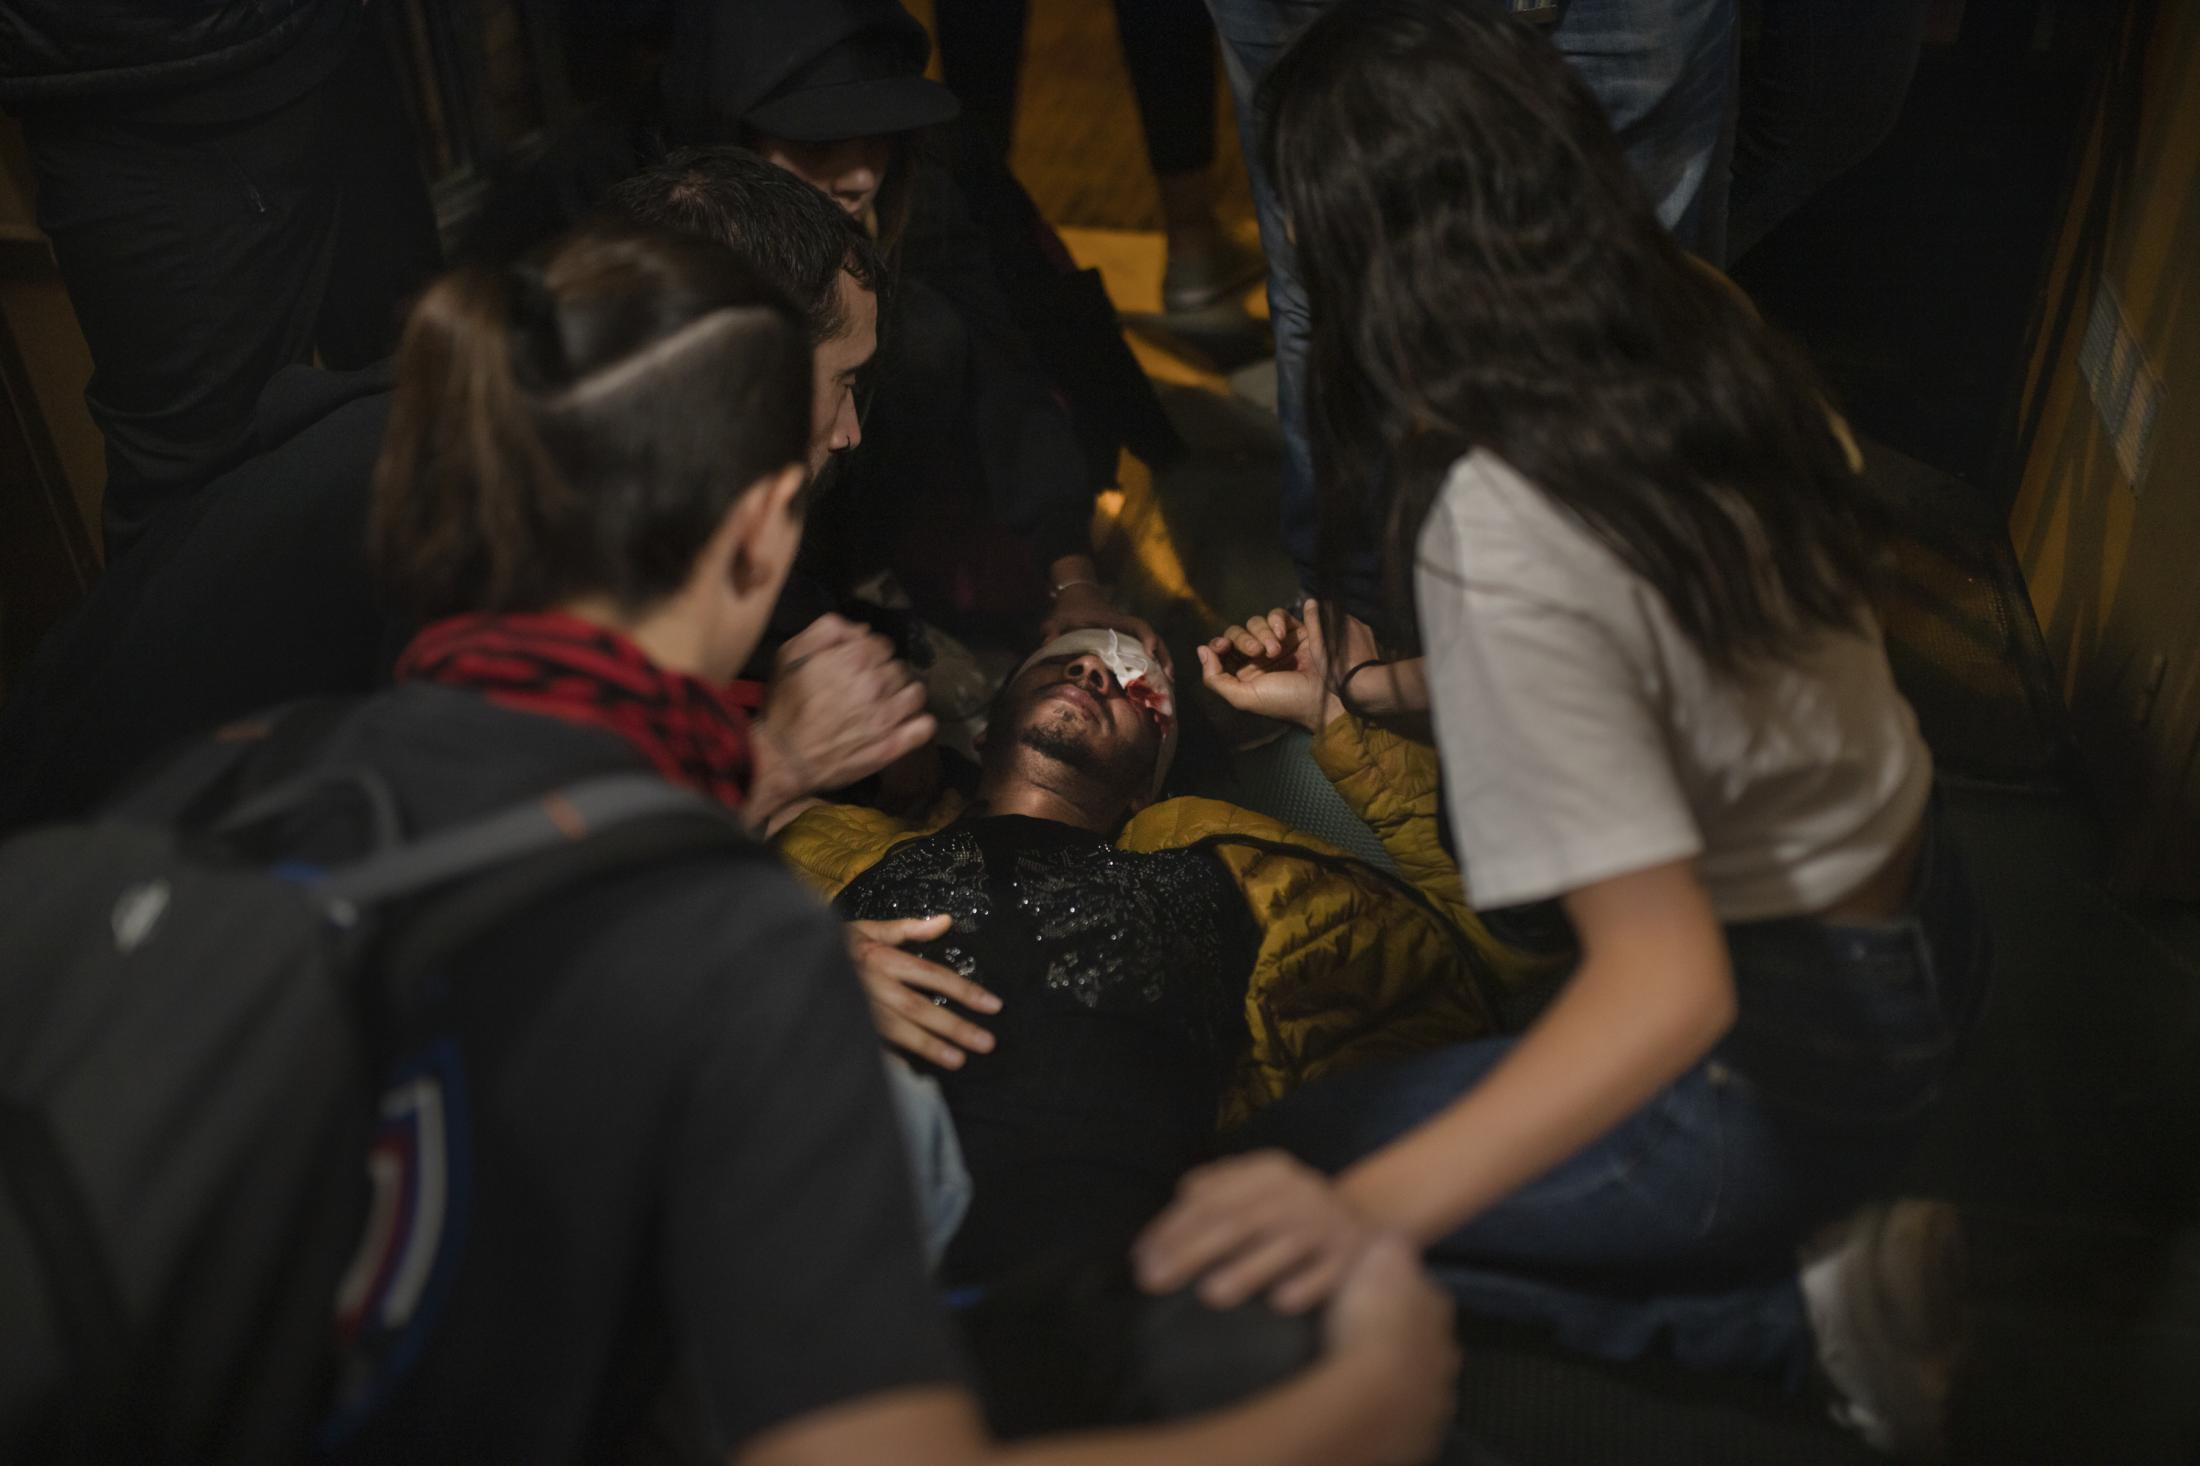 """October 18, 2019. Barcelona, Spain. A man is on the floor after being injured by the police. During protests in Catalonia, four people lost an eye, another lost testicular mass. Rights group Amnesty International called on """"all authorities"""" to refrain from contributing to the escalation of tensions in the streets and to respond """"proportionally"""" to outbreaks of violence. In 2014 a ban on the use of rubber bullets as an anti-riot weapon was imposed on the Catalan police force following a high profile campaign led by victims who had lost vision. Then Mossos de Esquadra only used """"foam"""" bullet to control the altercations recorded in the Catalan streets, while for National police and Guardia Civile It was still possible to use rubber bullets because of """"a scale of order"""" and the rules that allow using this riot gear """"are above"""" what is established in the Catalan law."""